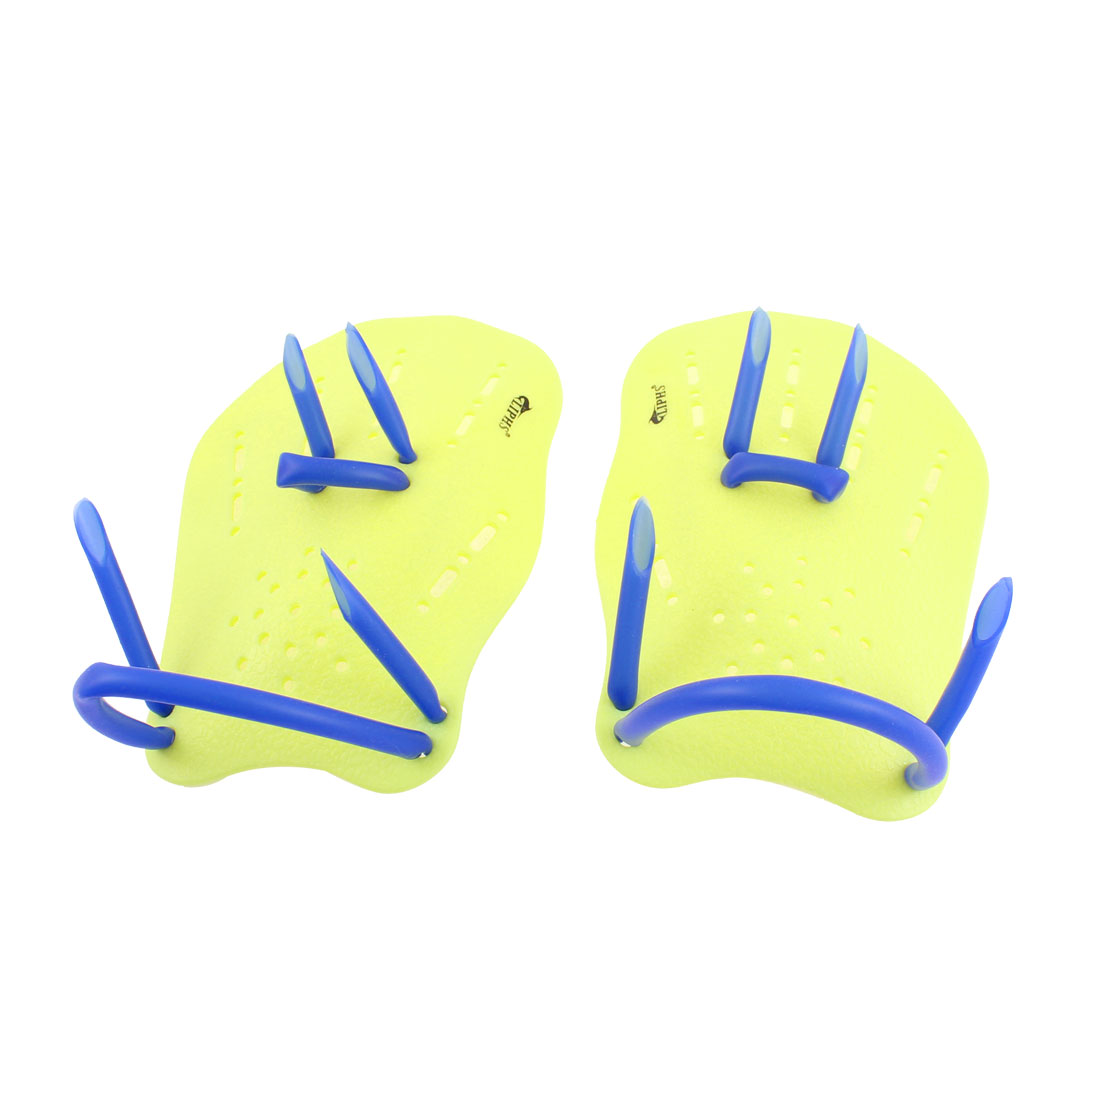 Rubber Strap Training Swimming Hand Paddles Webbed Gloves Yellow Pair